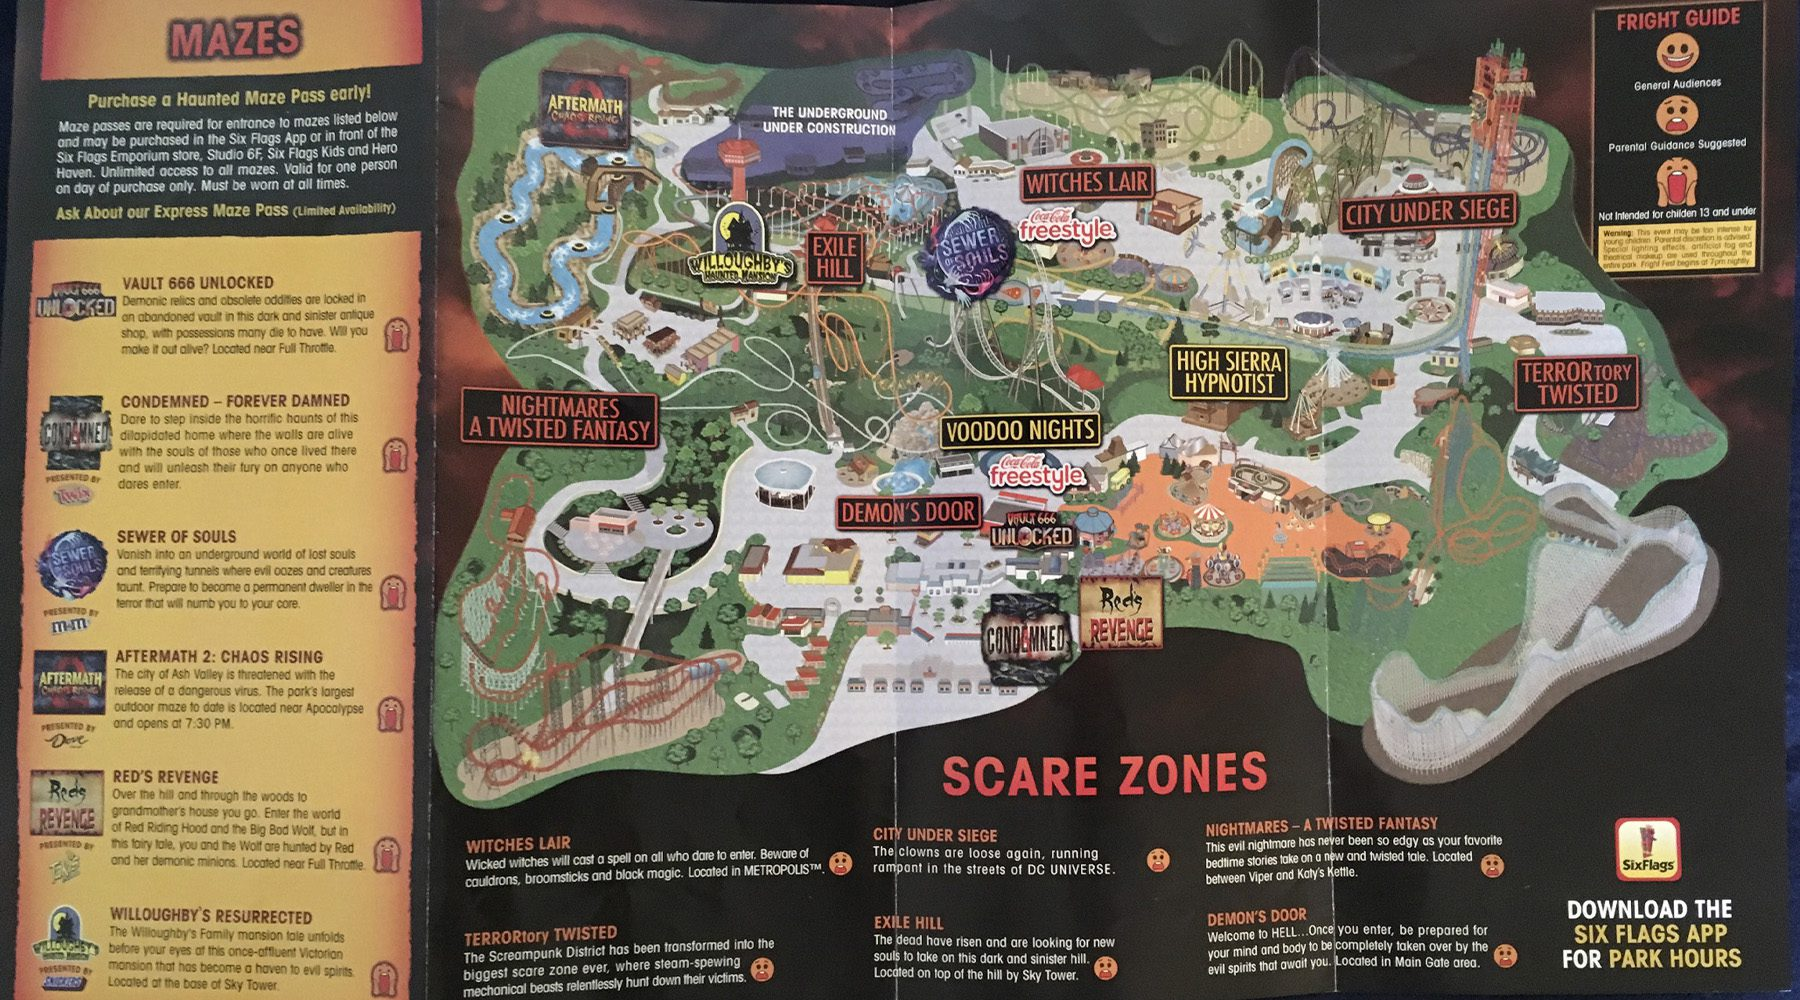 2019 SiX Flags Fright Fest Map